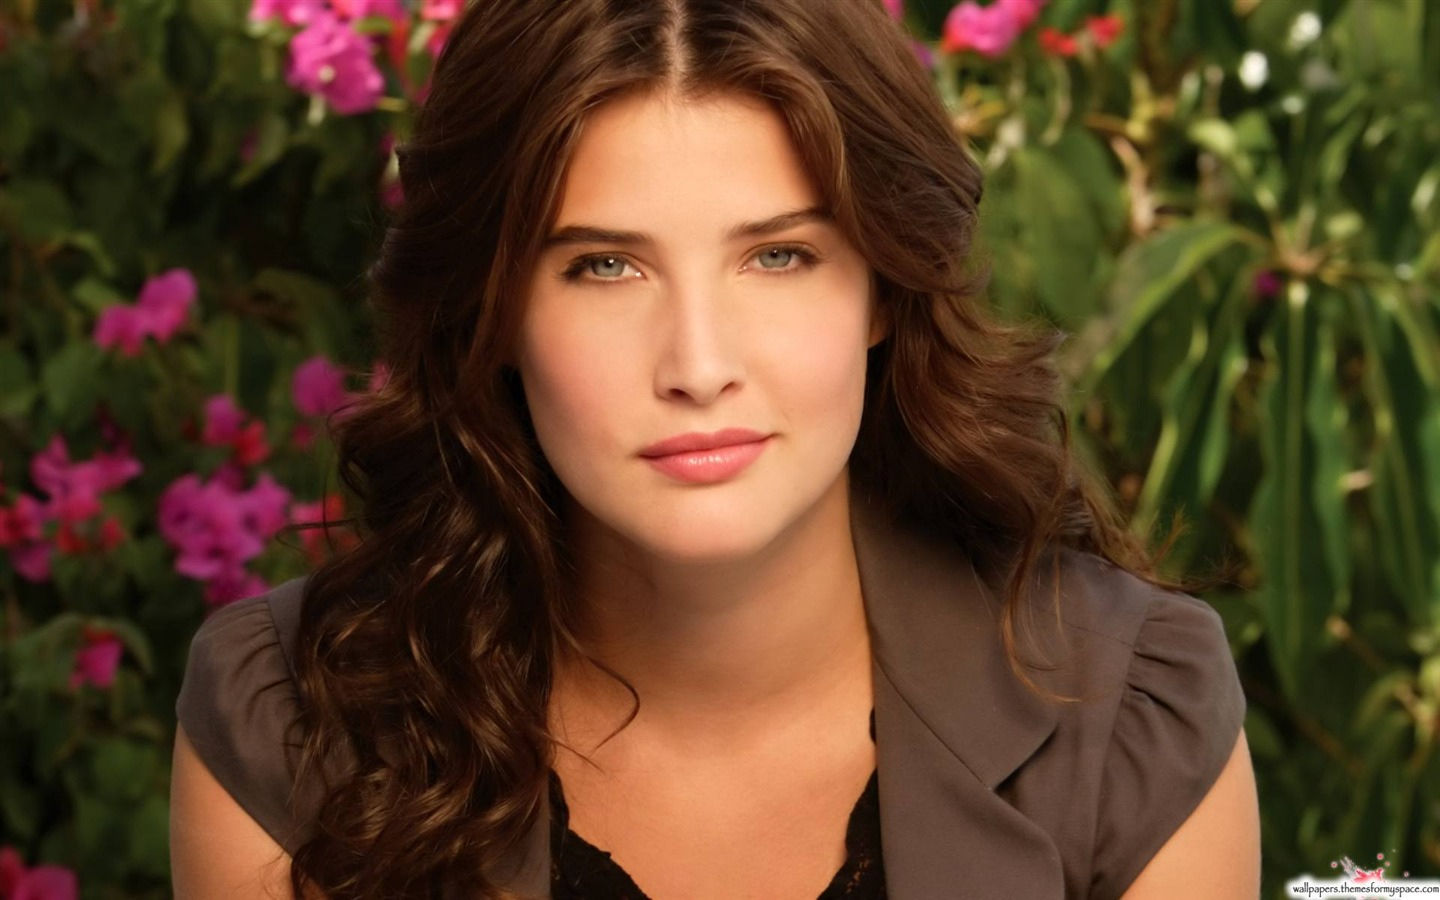 Cobie Smulders #010 - 1440x900 Wallpapers Pictures Photos Images